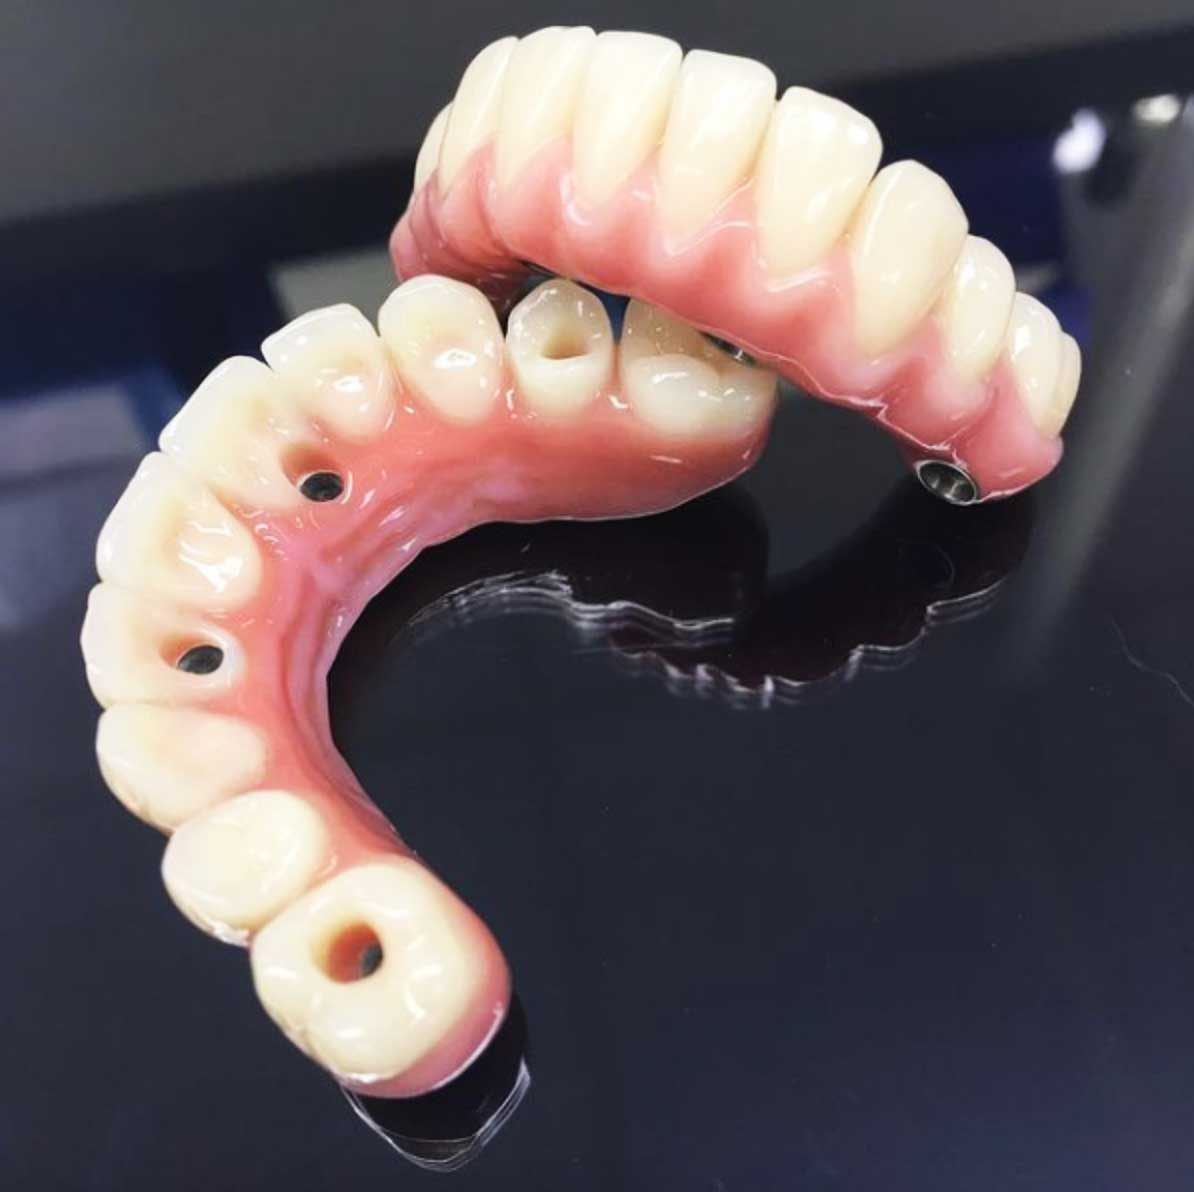 Acrylic-and-composite-hybrid-wrap-with-Phonares-II-acrylic-teeth-and-custom-milled-titanium-substructure.